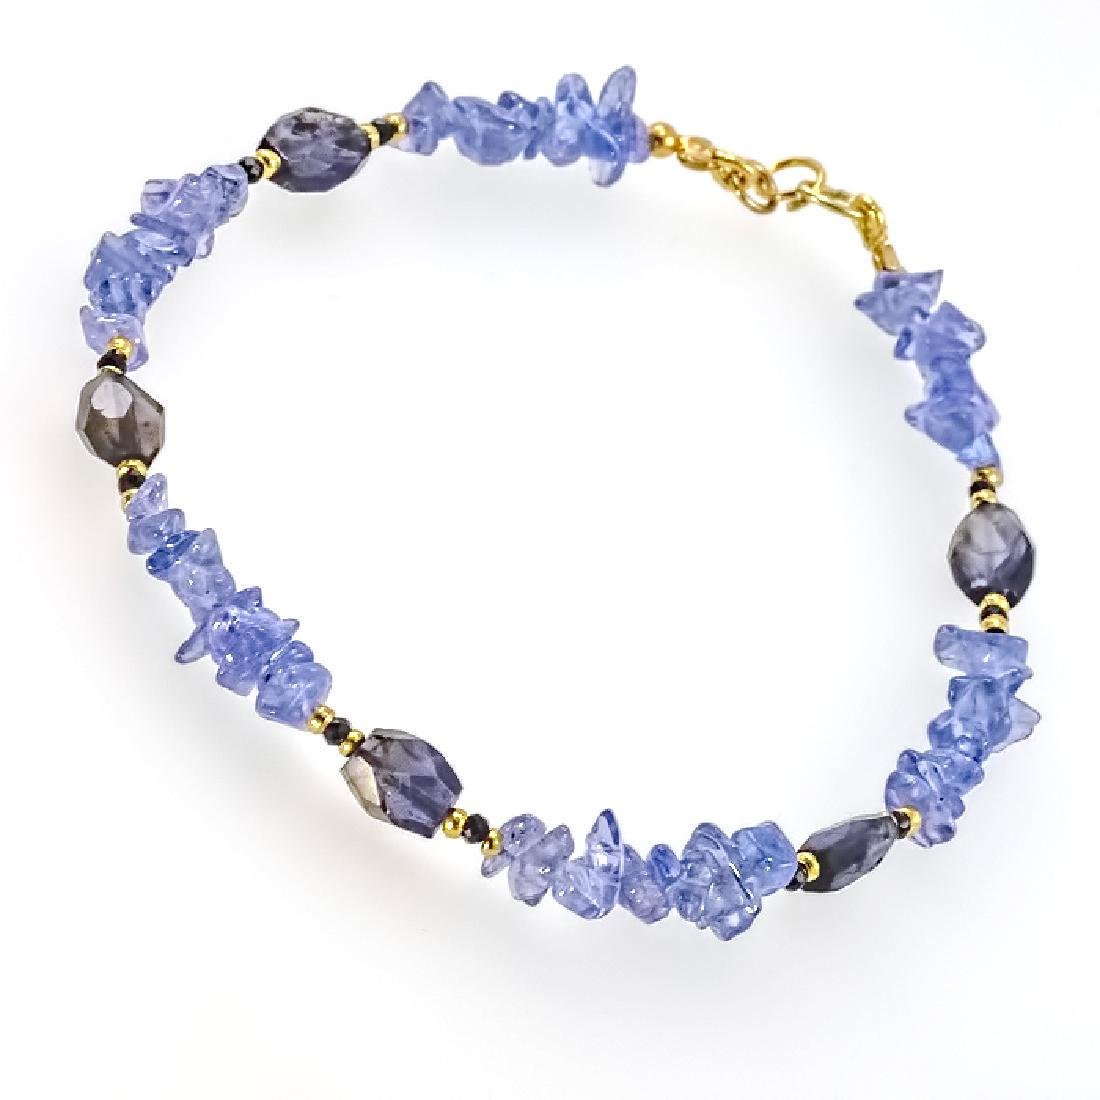 Tanzanite Bracelet with Sapphires - 6